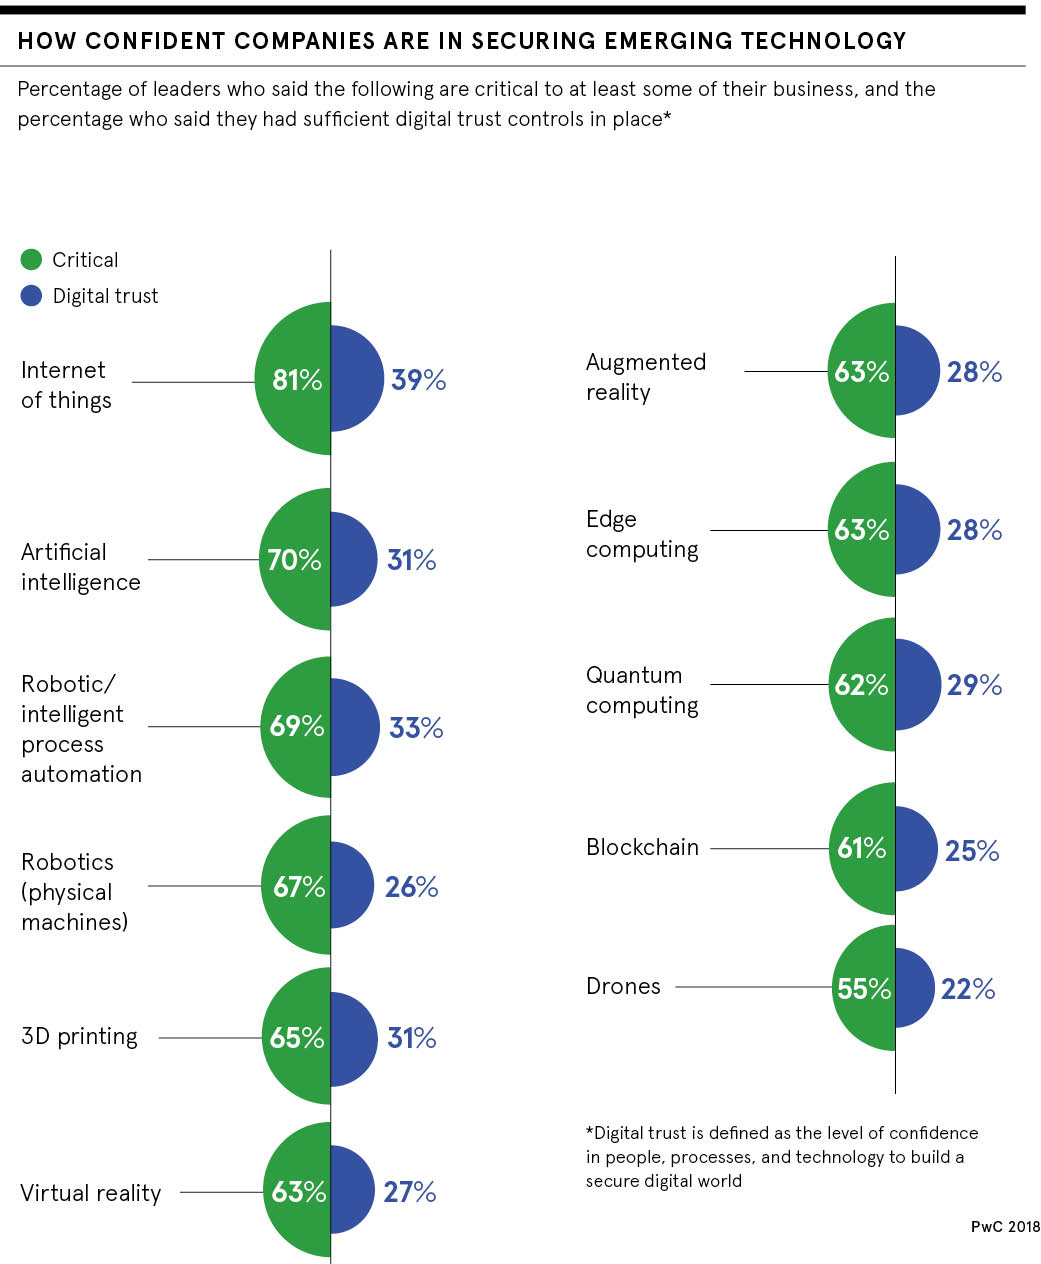 dataset on how confident companies are about securing emerging technology